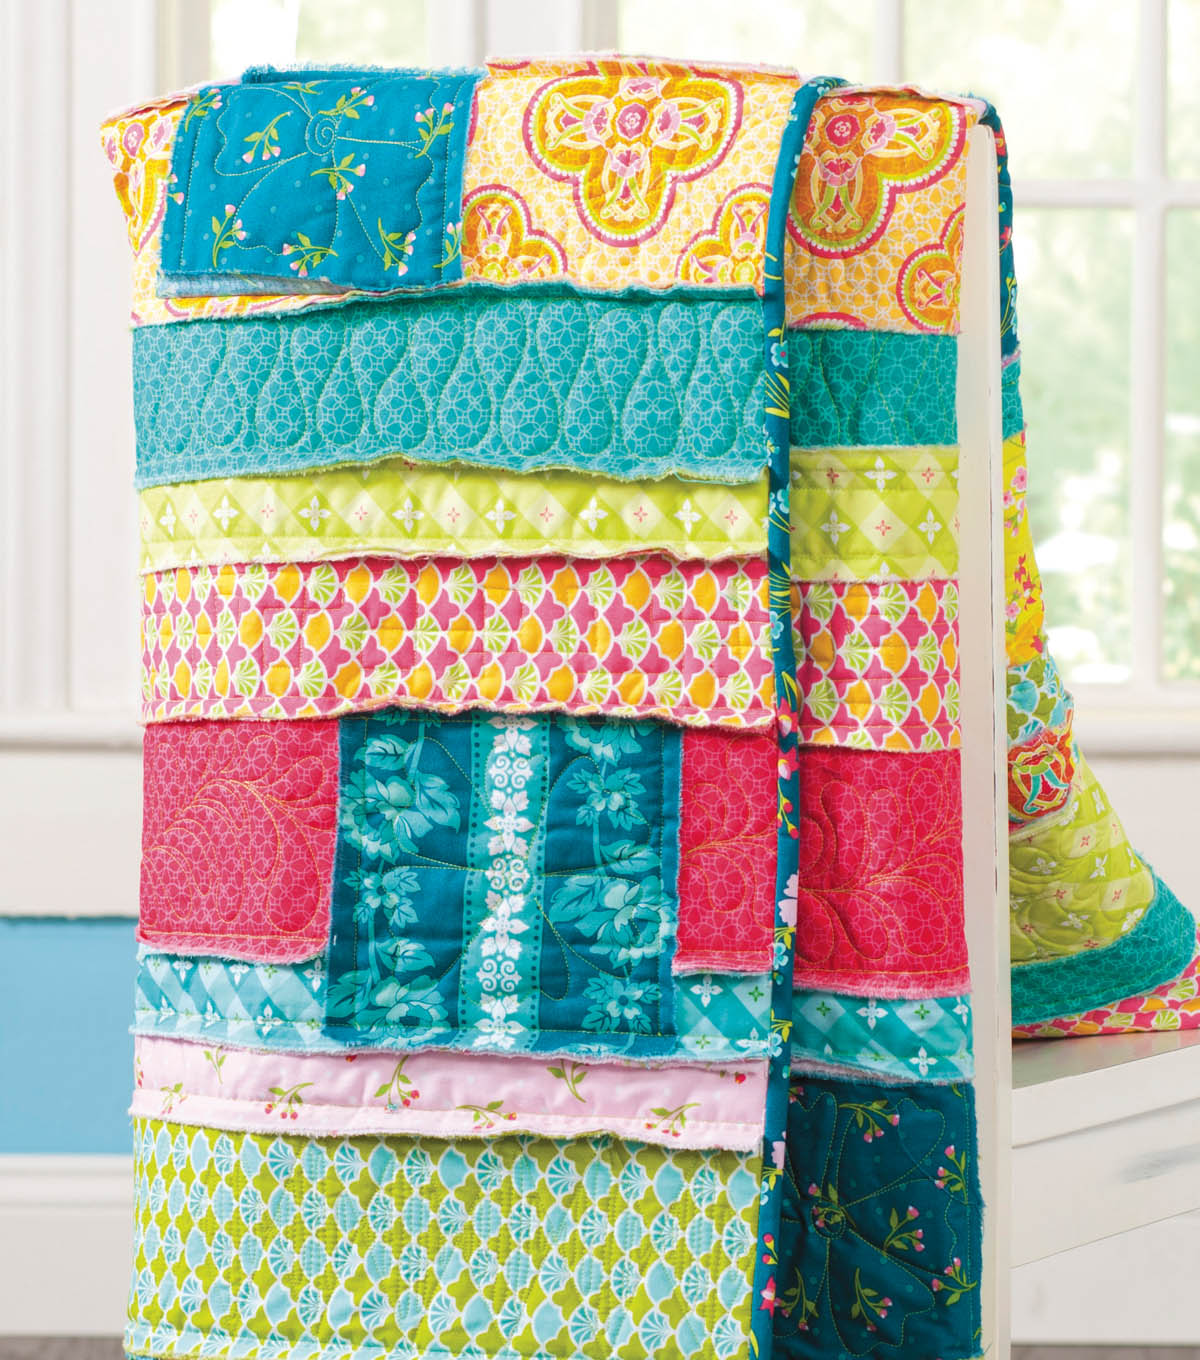 Jo Ann Fabrics And Crafts Mall: Frayed Strips And Patches Quilt